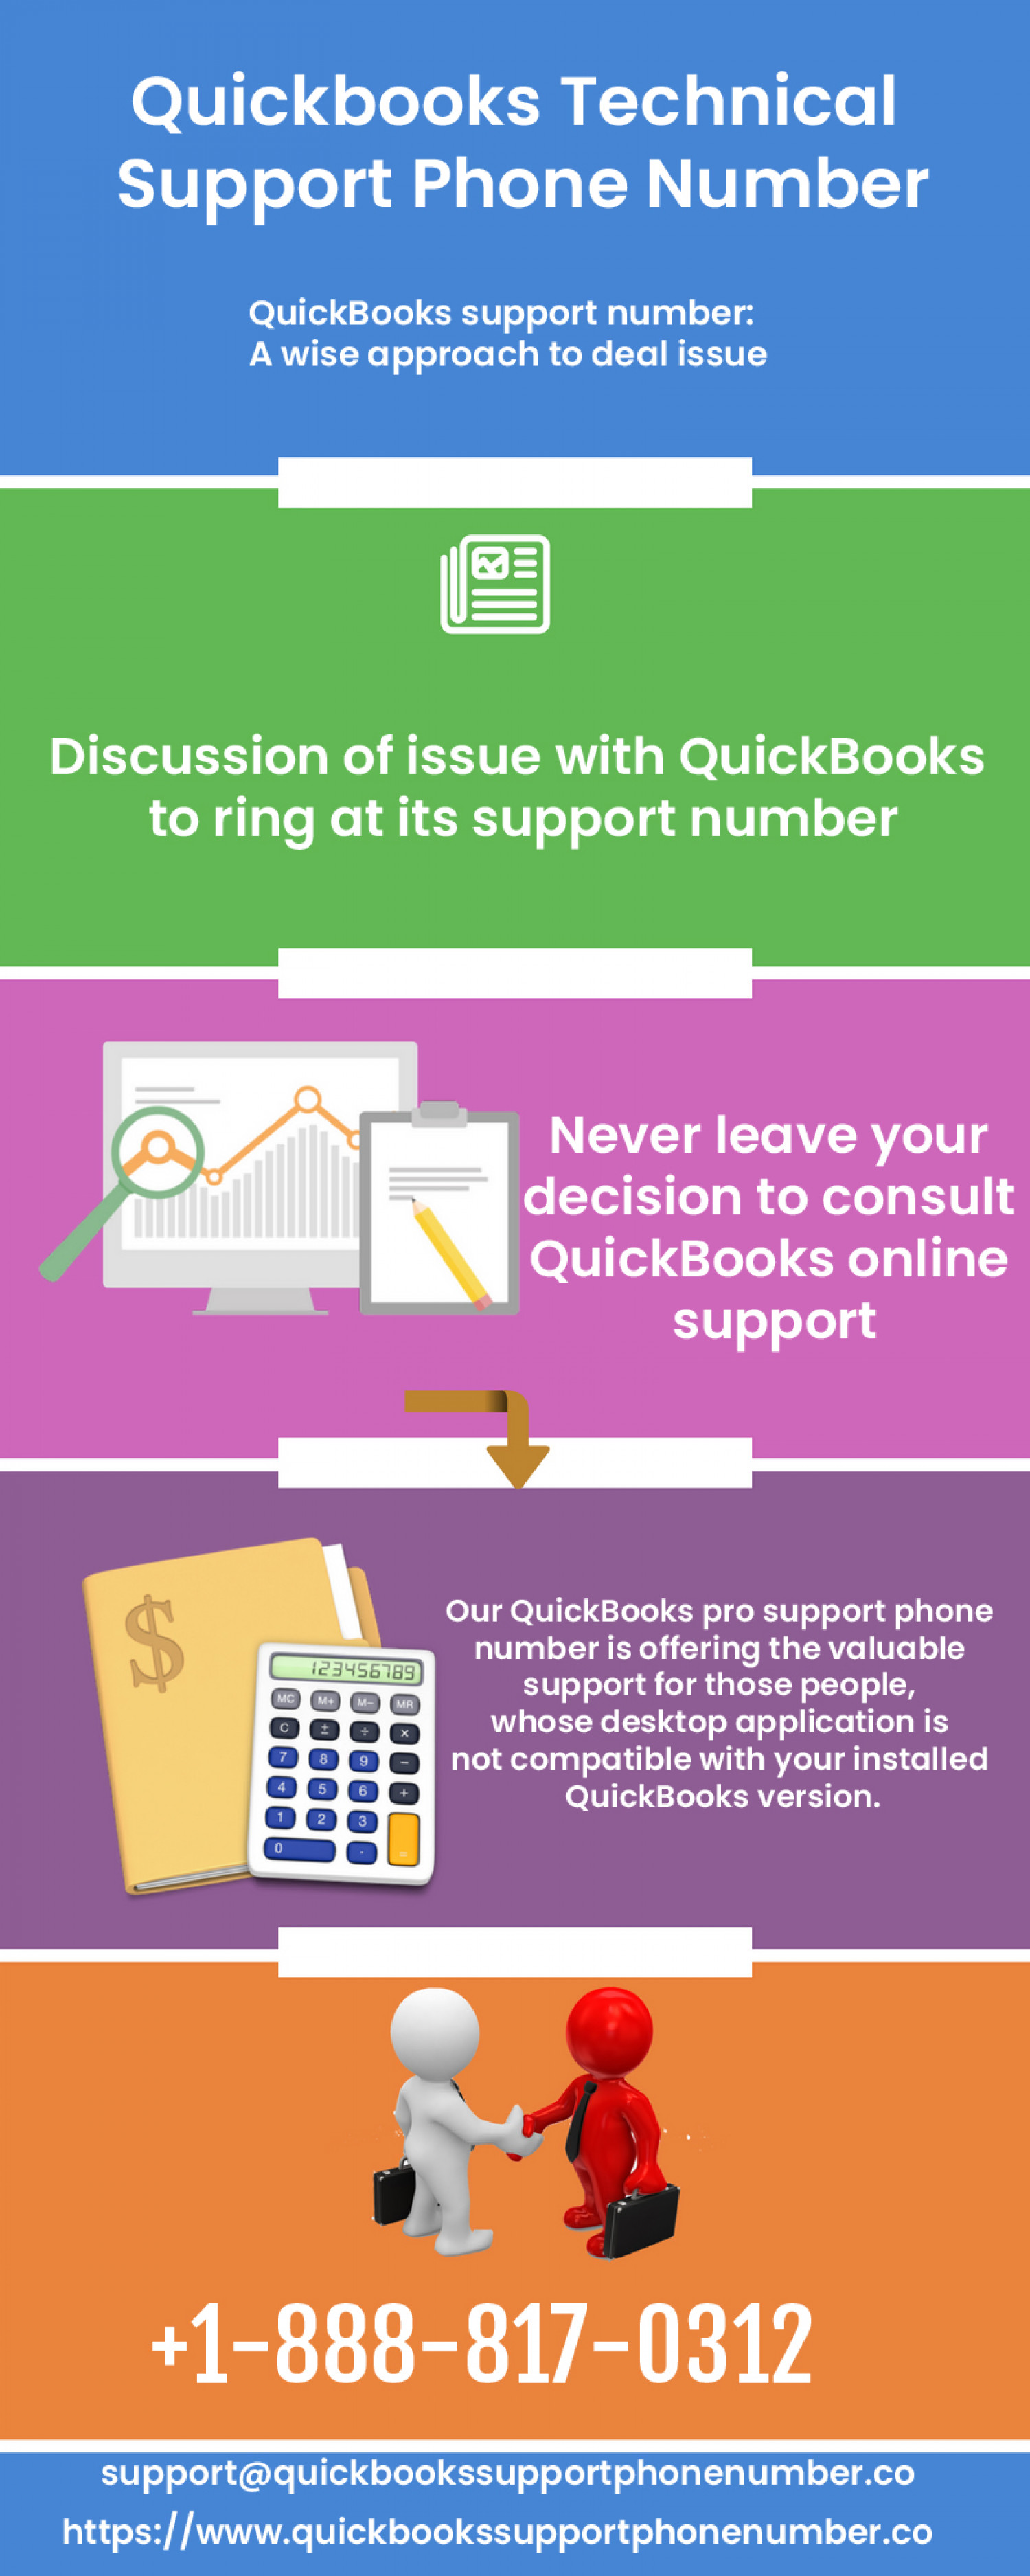 Quickbooks Support Phone Number 1-888-817-0312 Infographic